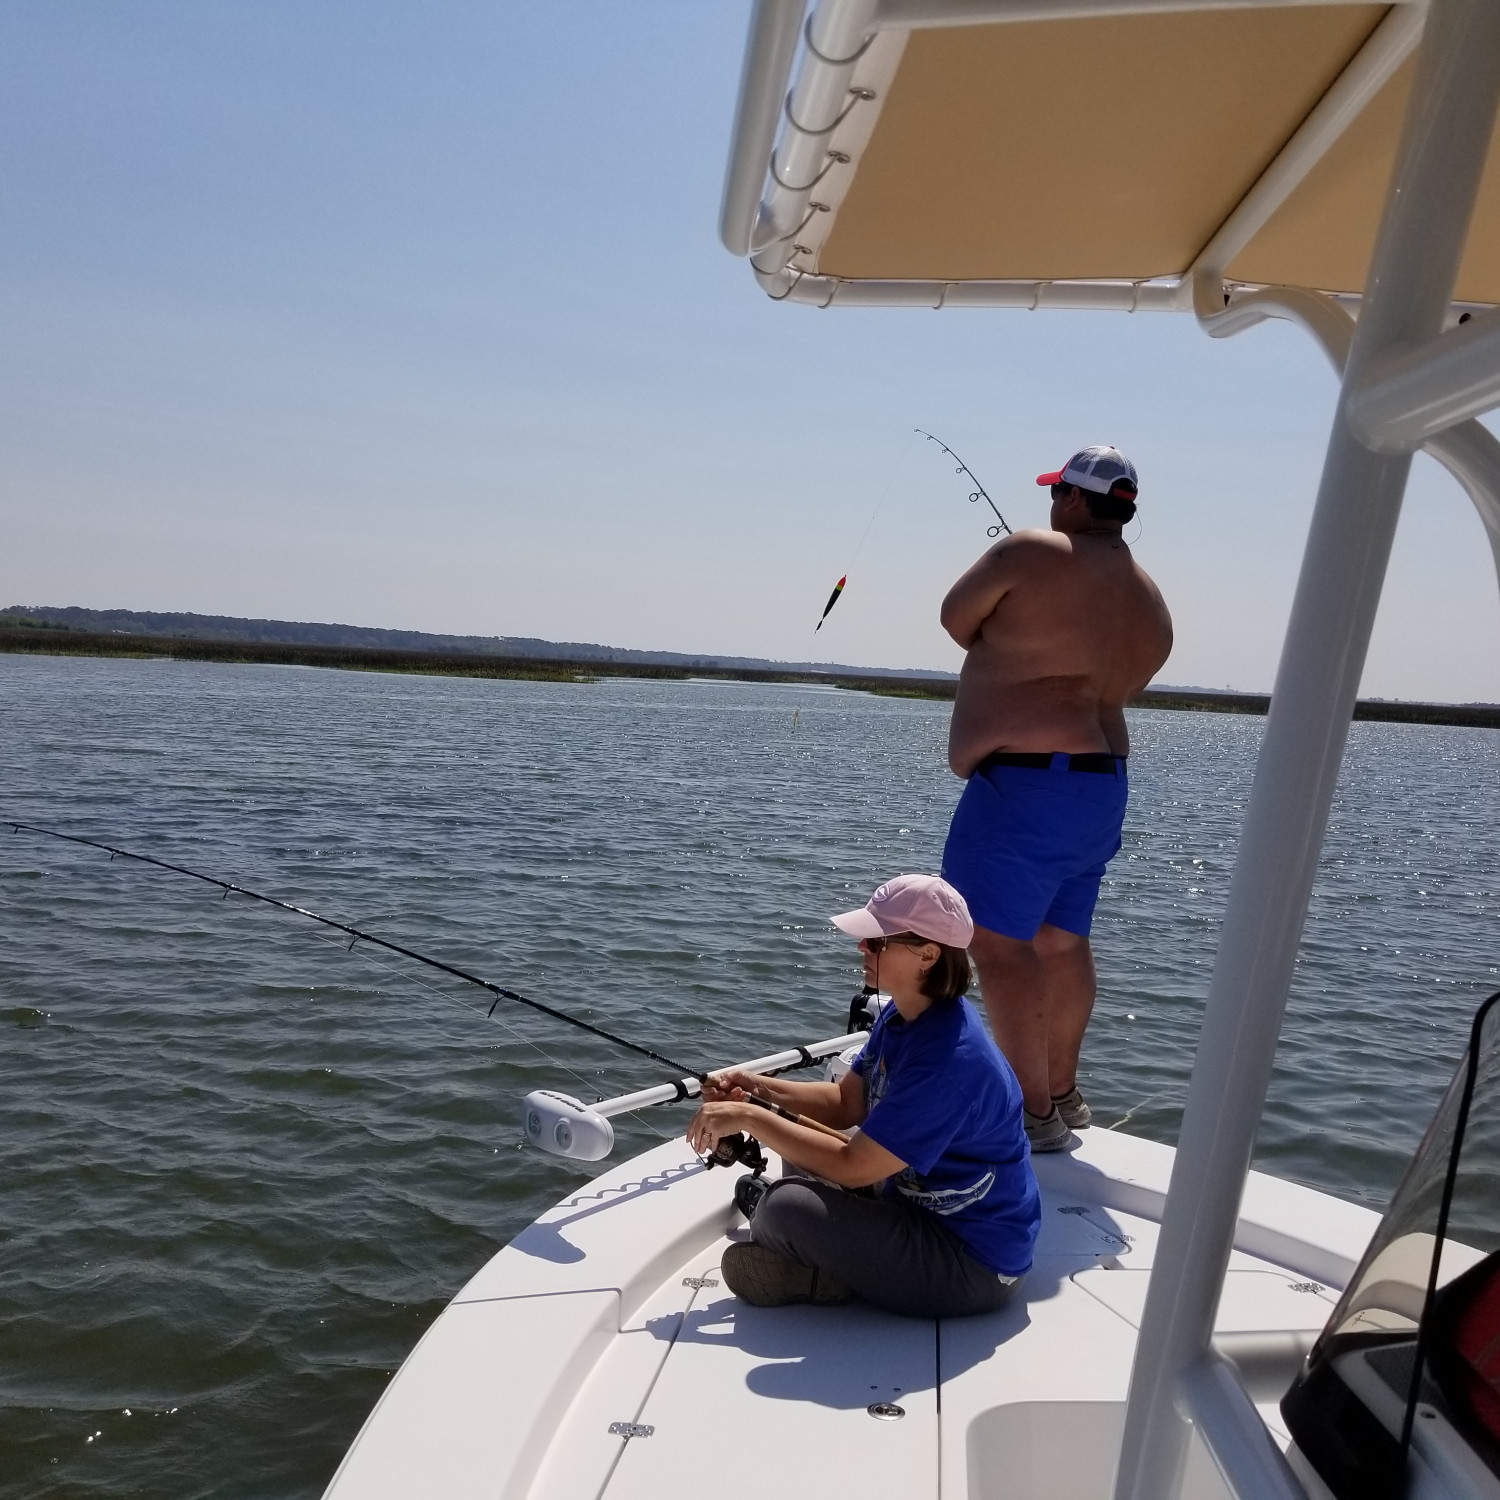 Title: Fishing with the family. - On board their Sportsman Masters 227 Bay Boat - Location: Brunswick Ga. Participating in the Photo Contest #SportsmanApril2018